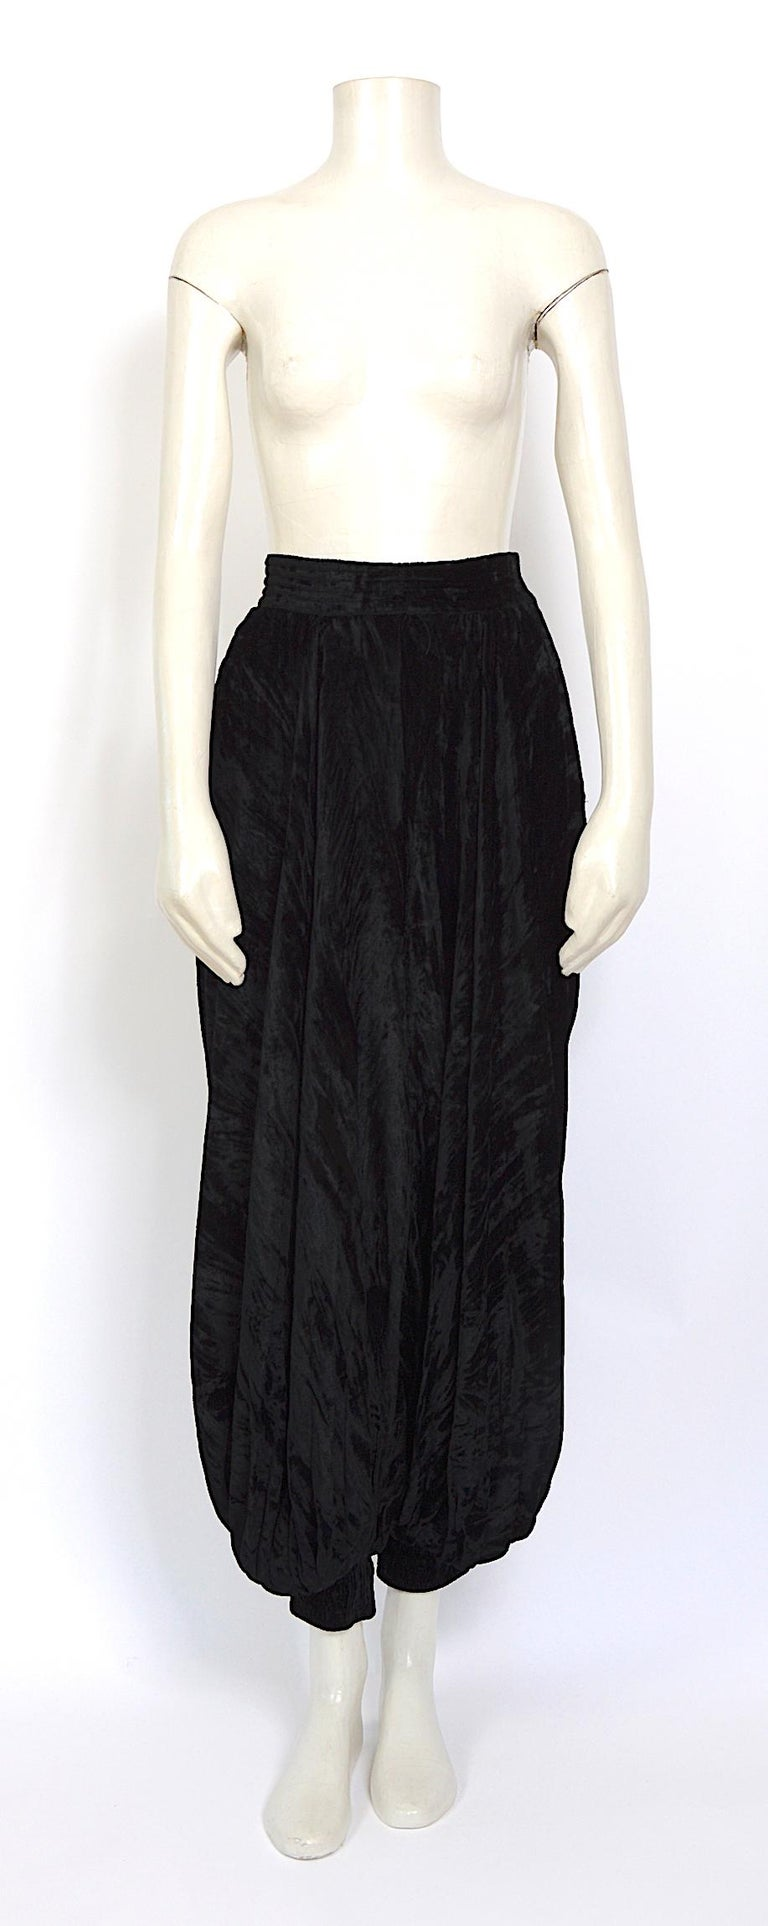 """These documented rare 1970s Loulou de la Falaise style Yves Saint Laurent high-waisted crushed velvet harem pants with pleating and elasticized cuffs are from the designer's famous """"Rive Gauche"""" ready-to-wear line. Made in France. They do up on the"""